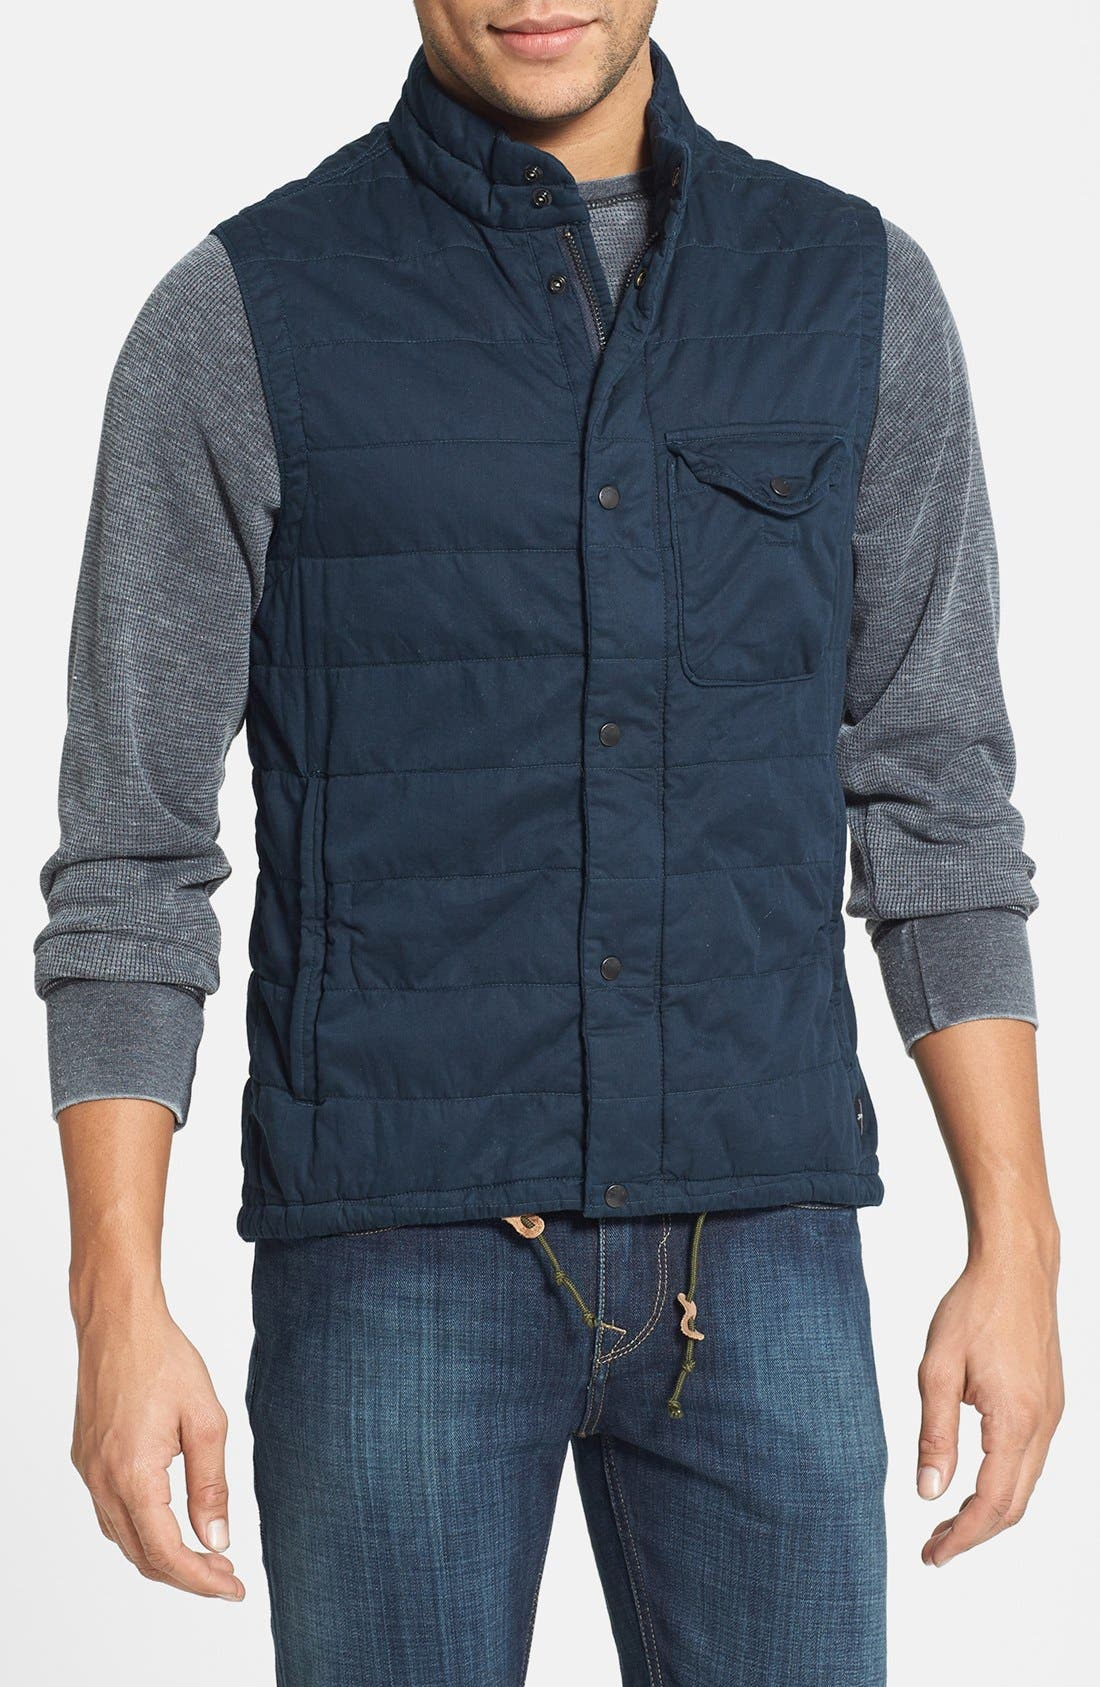 Alternate Image 1 Selected - Relwen 'Flyweight' Cotton Twill Vest